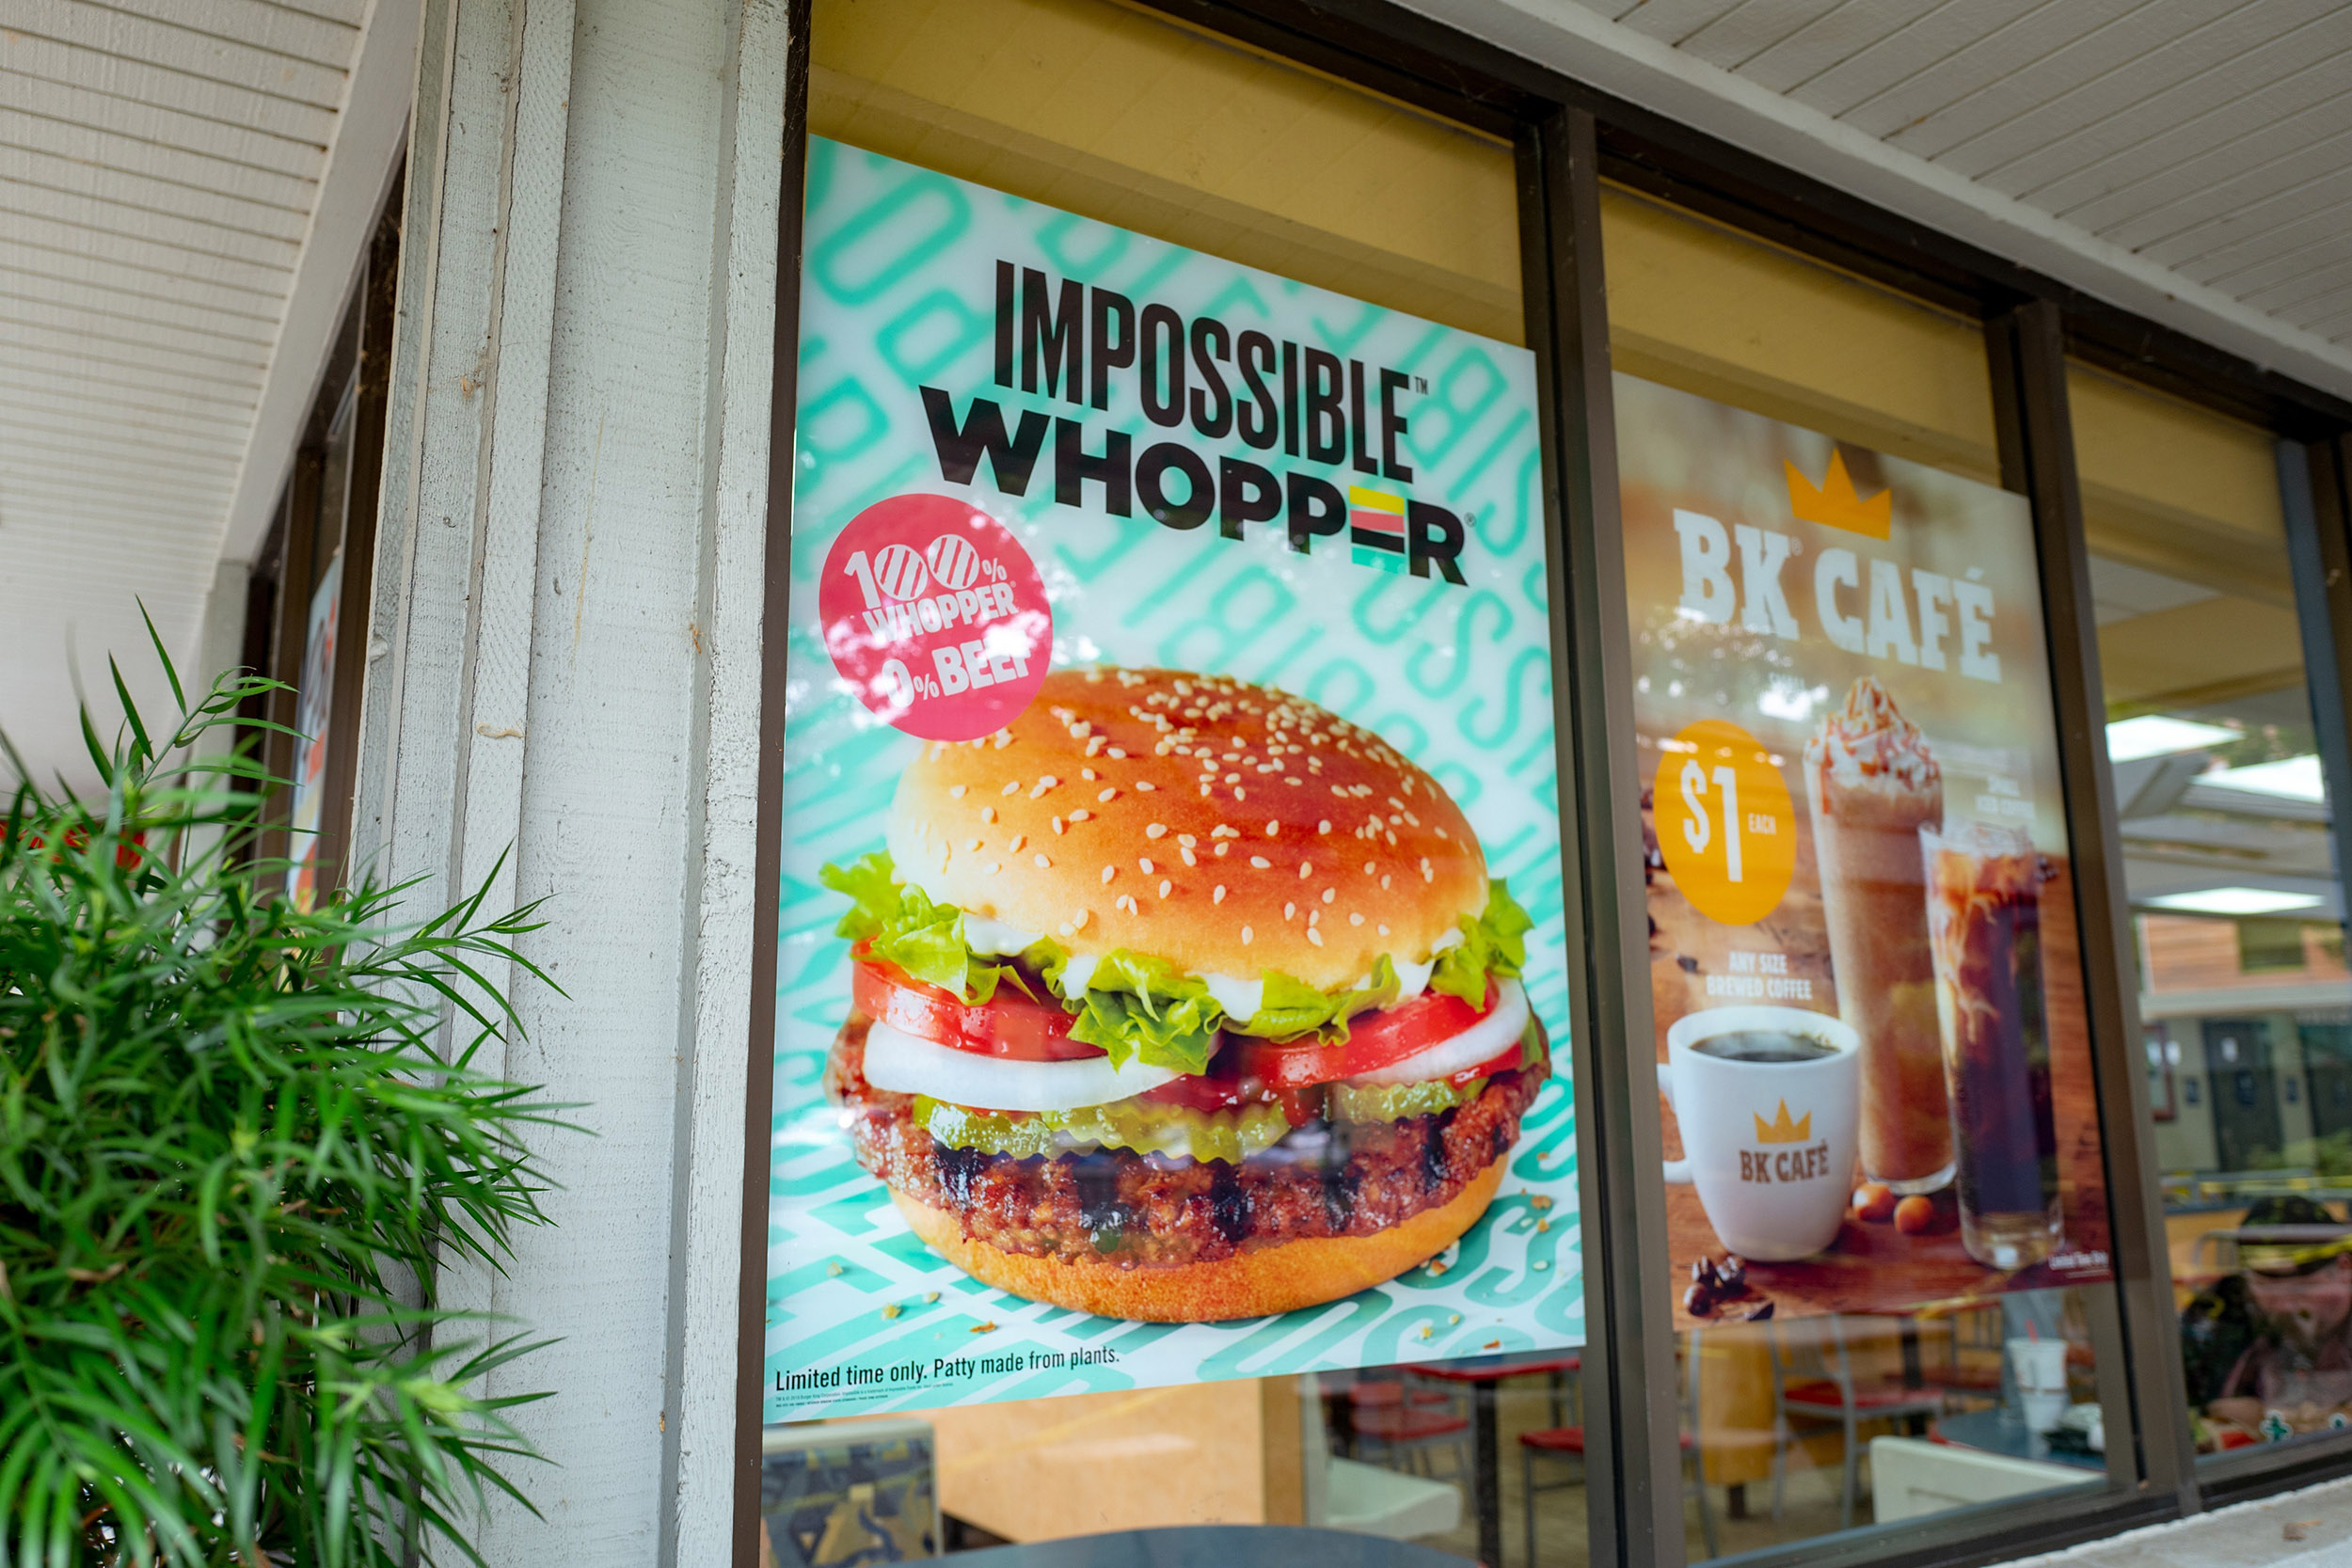 Vegan Man Sues Burger King Says Impossible Whoppers Contaminated By Meat